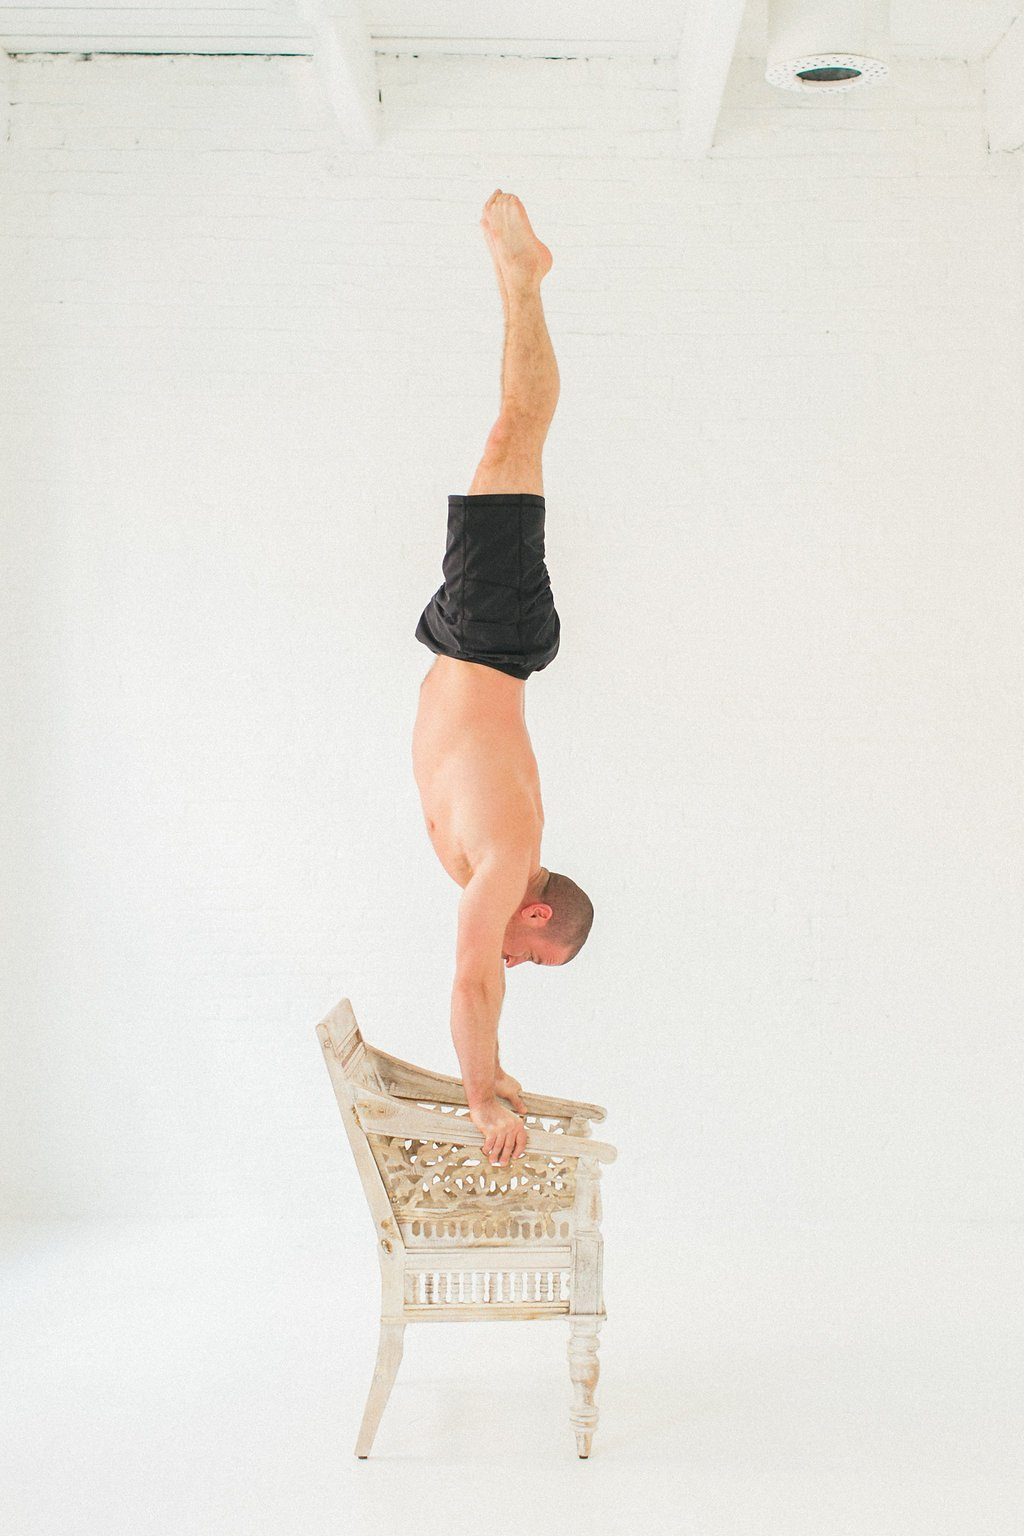 Man holding a handstand on a chair